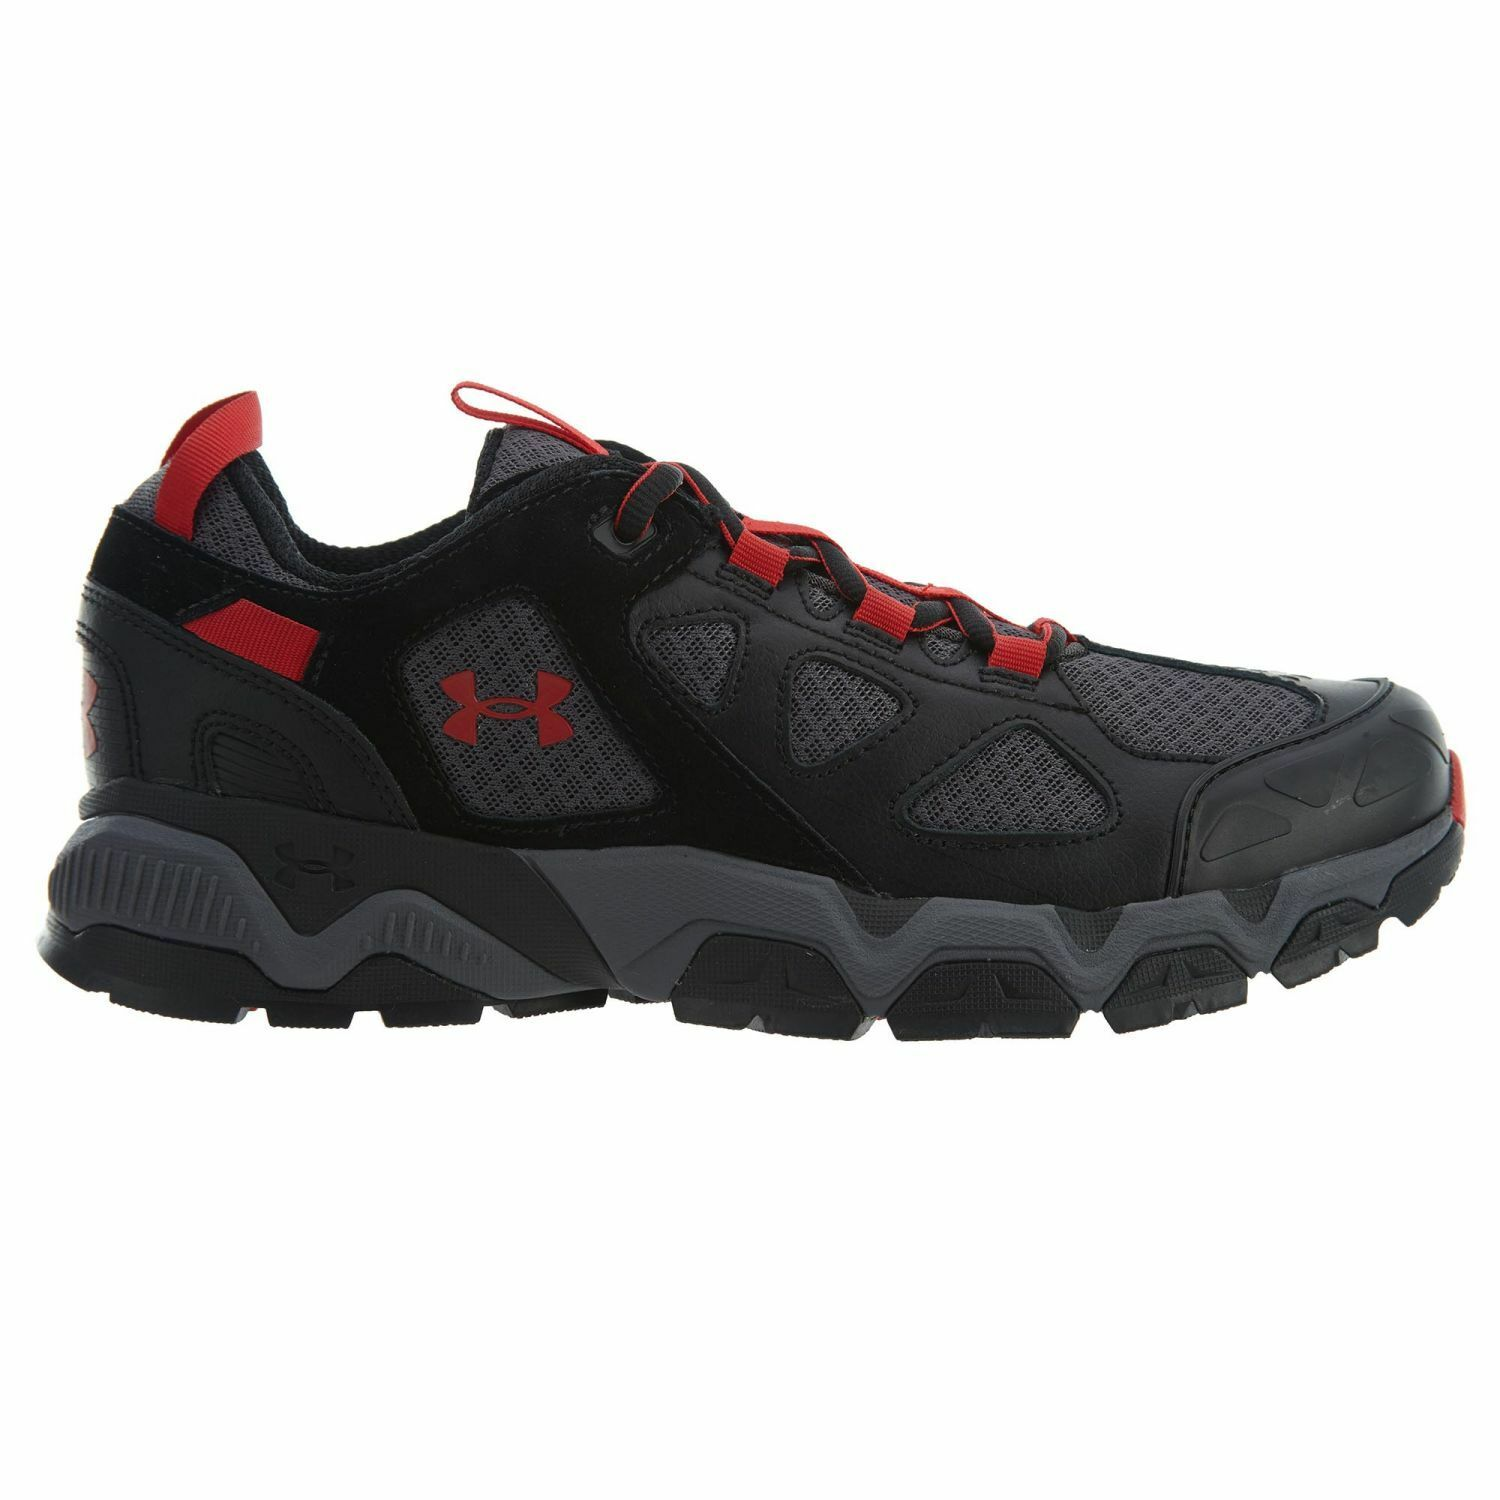 Under Armour Mirage 3.0 Mens 1287351-002 Black Grey Red Hiking Shoes Size 8